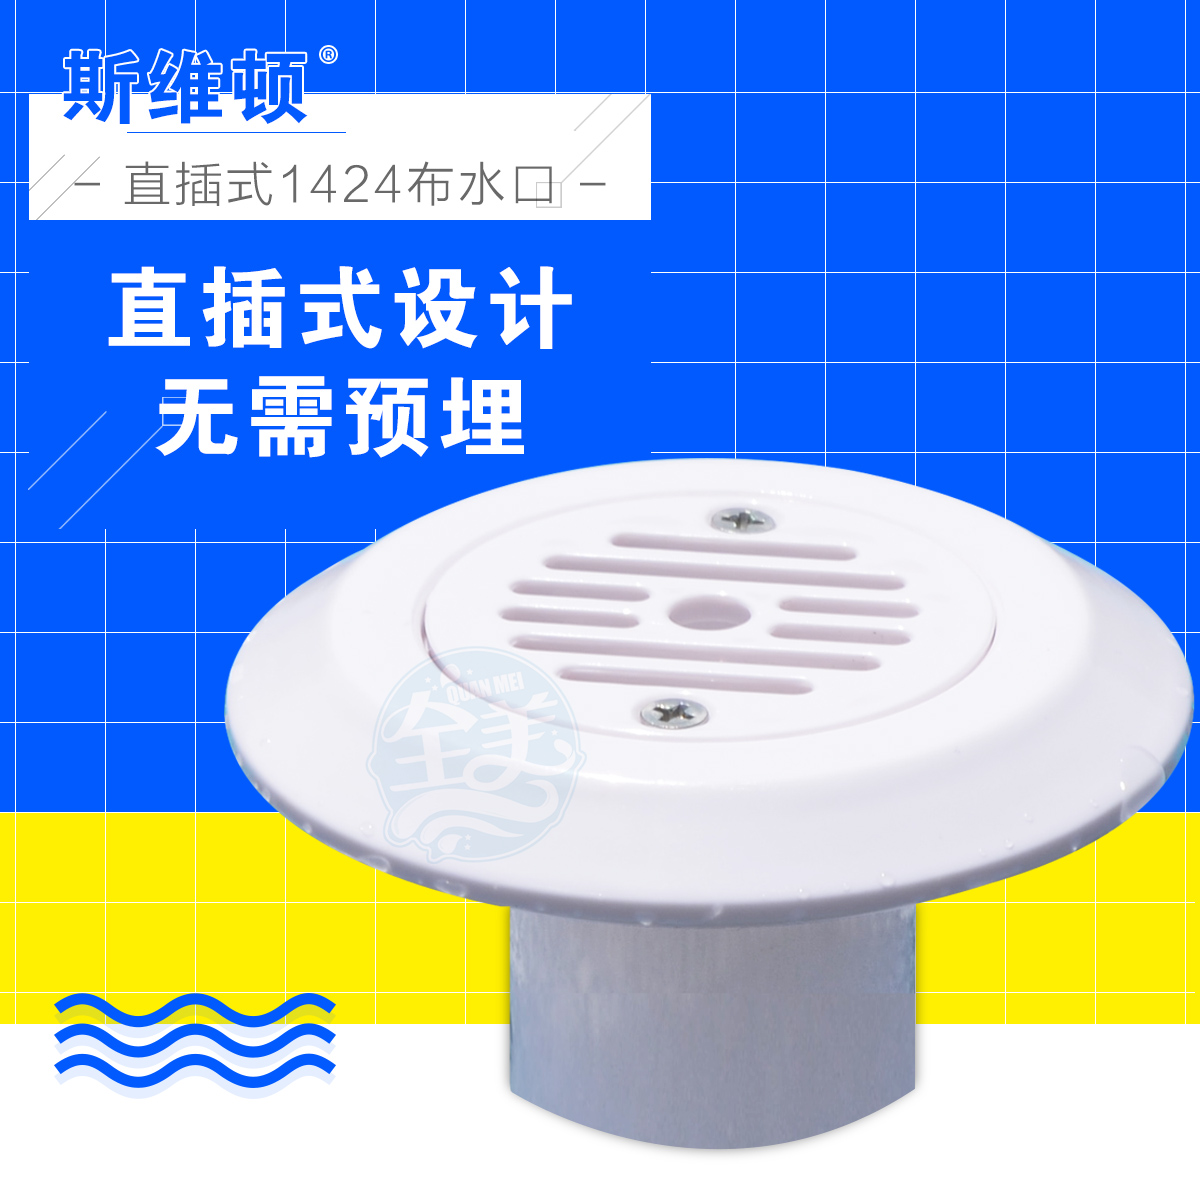 Piece swimming pool water pool outlet sp-1424 adjustable inline style pool cloth outlet to outlet